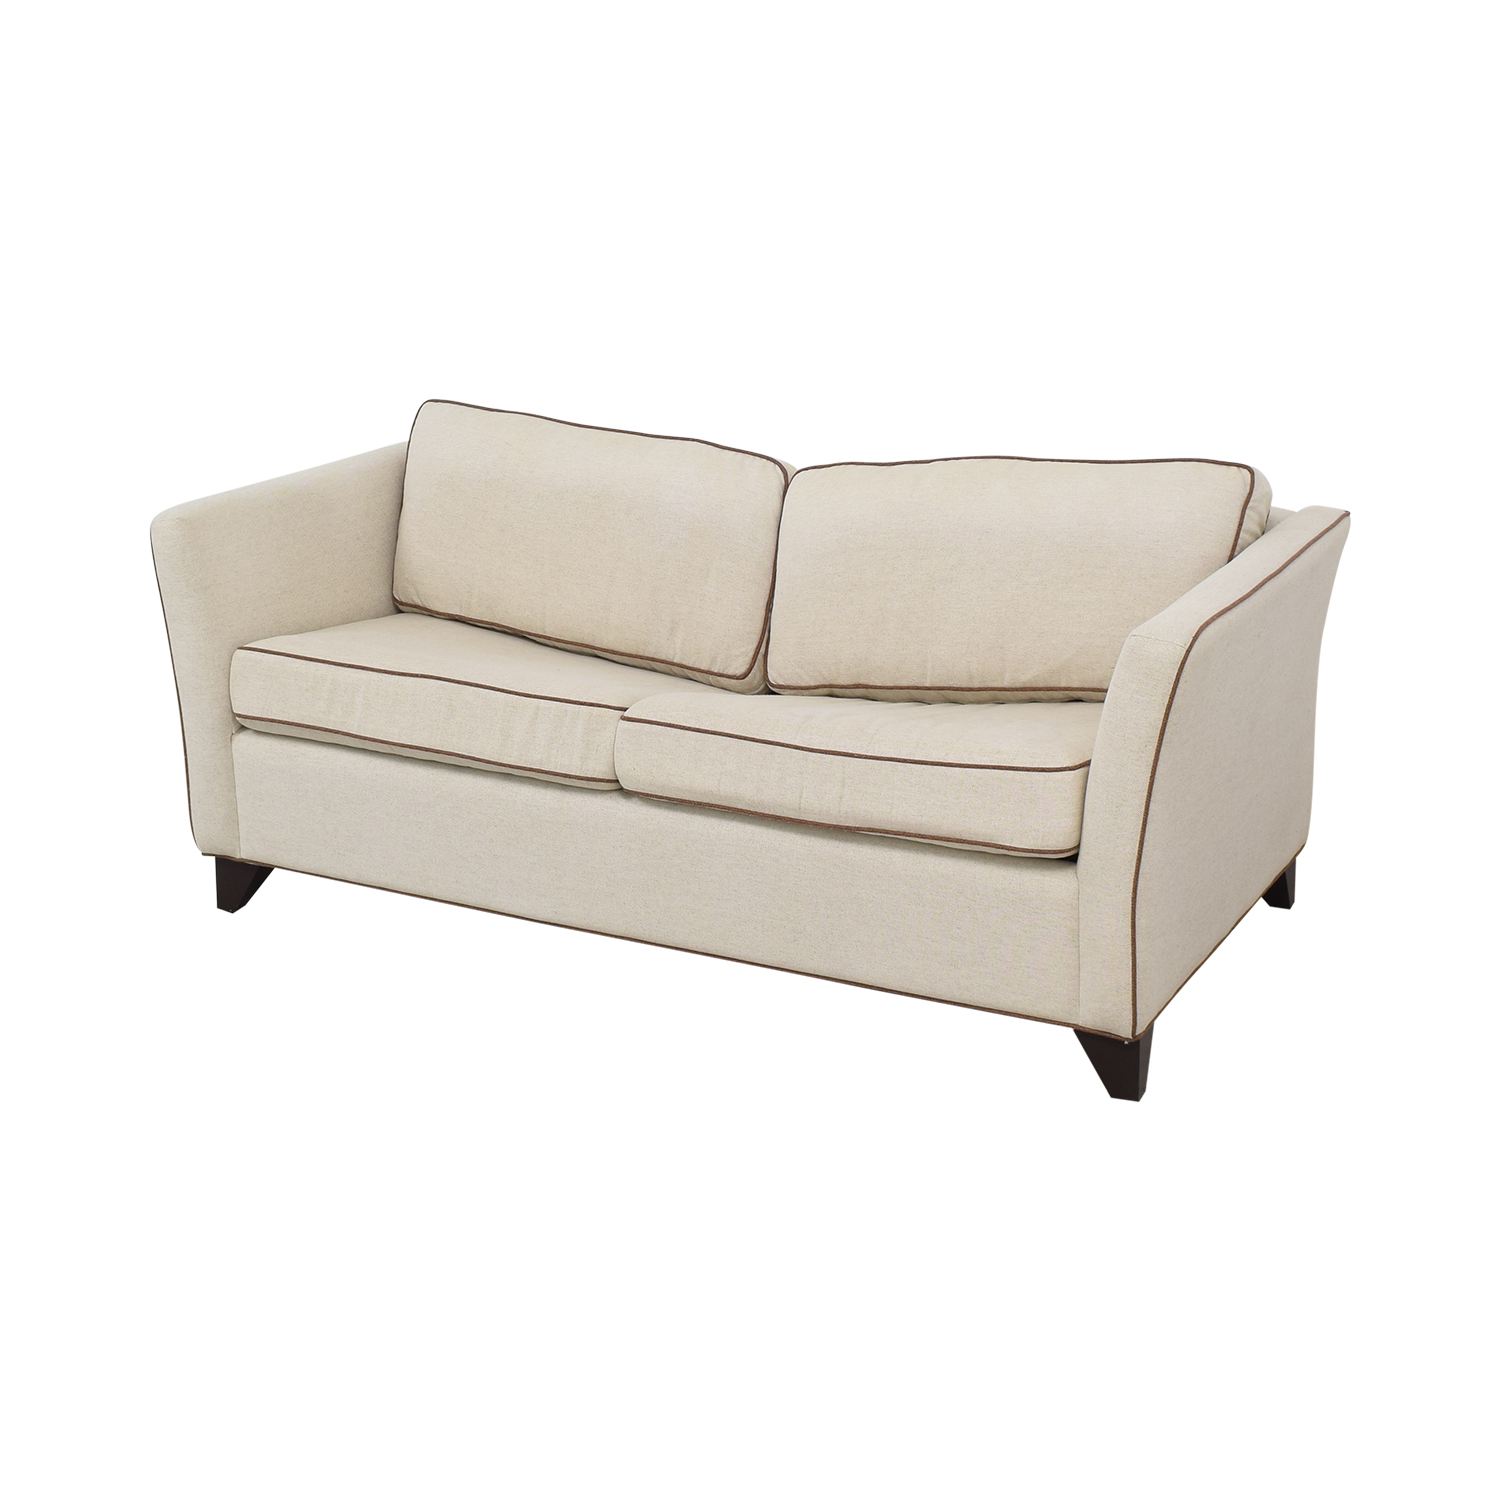 Carlyle Carlyle Sandy Sofa Bed nyc